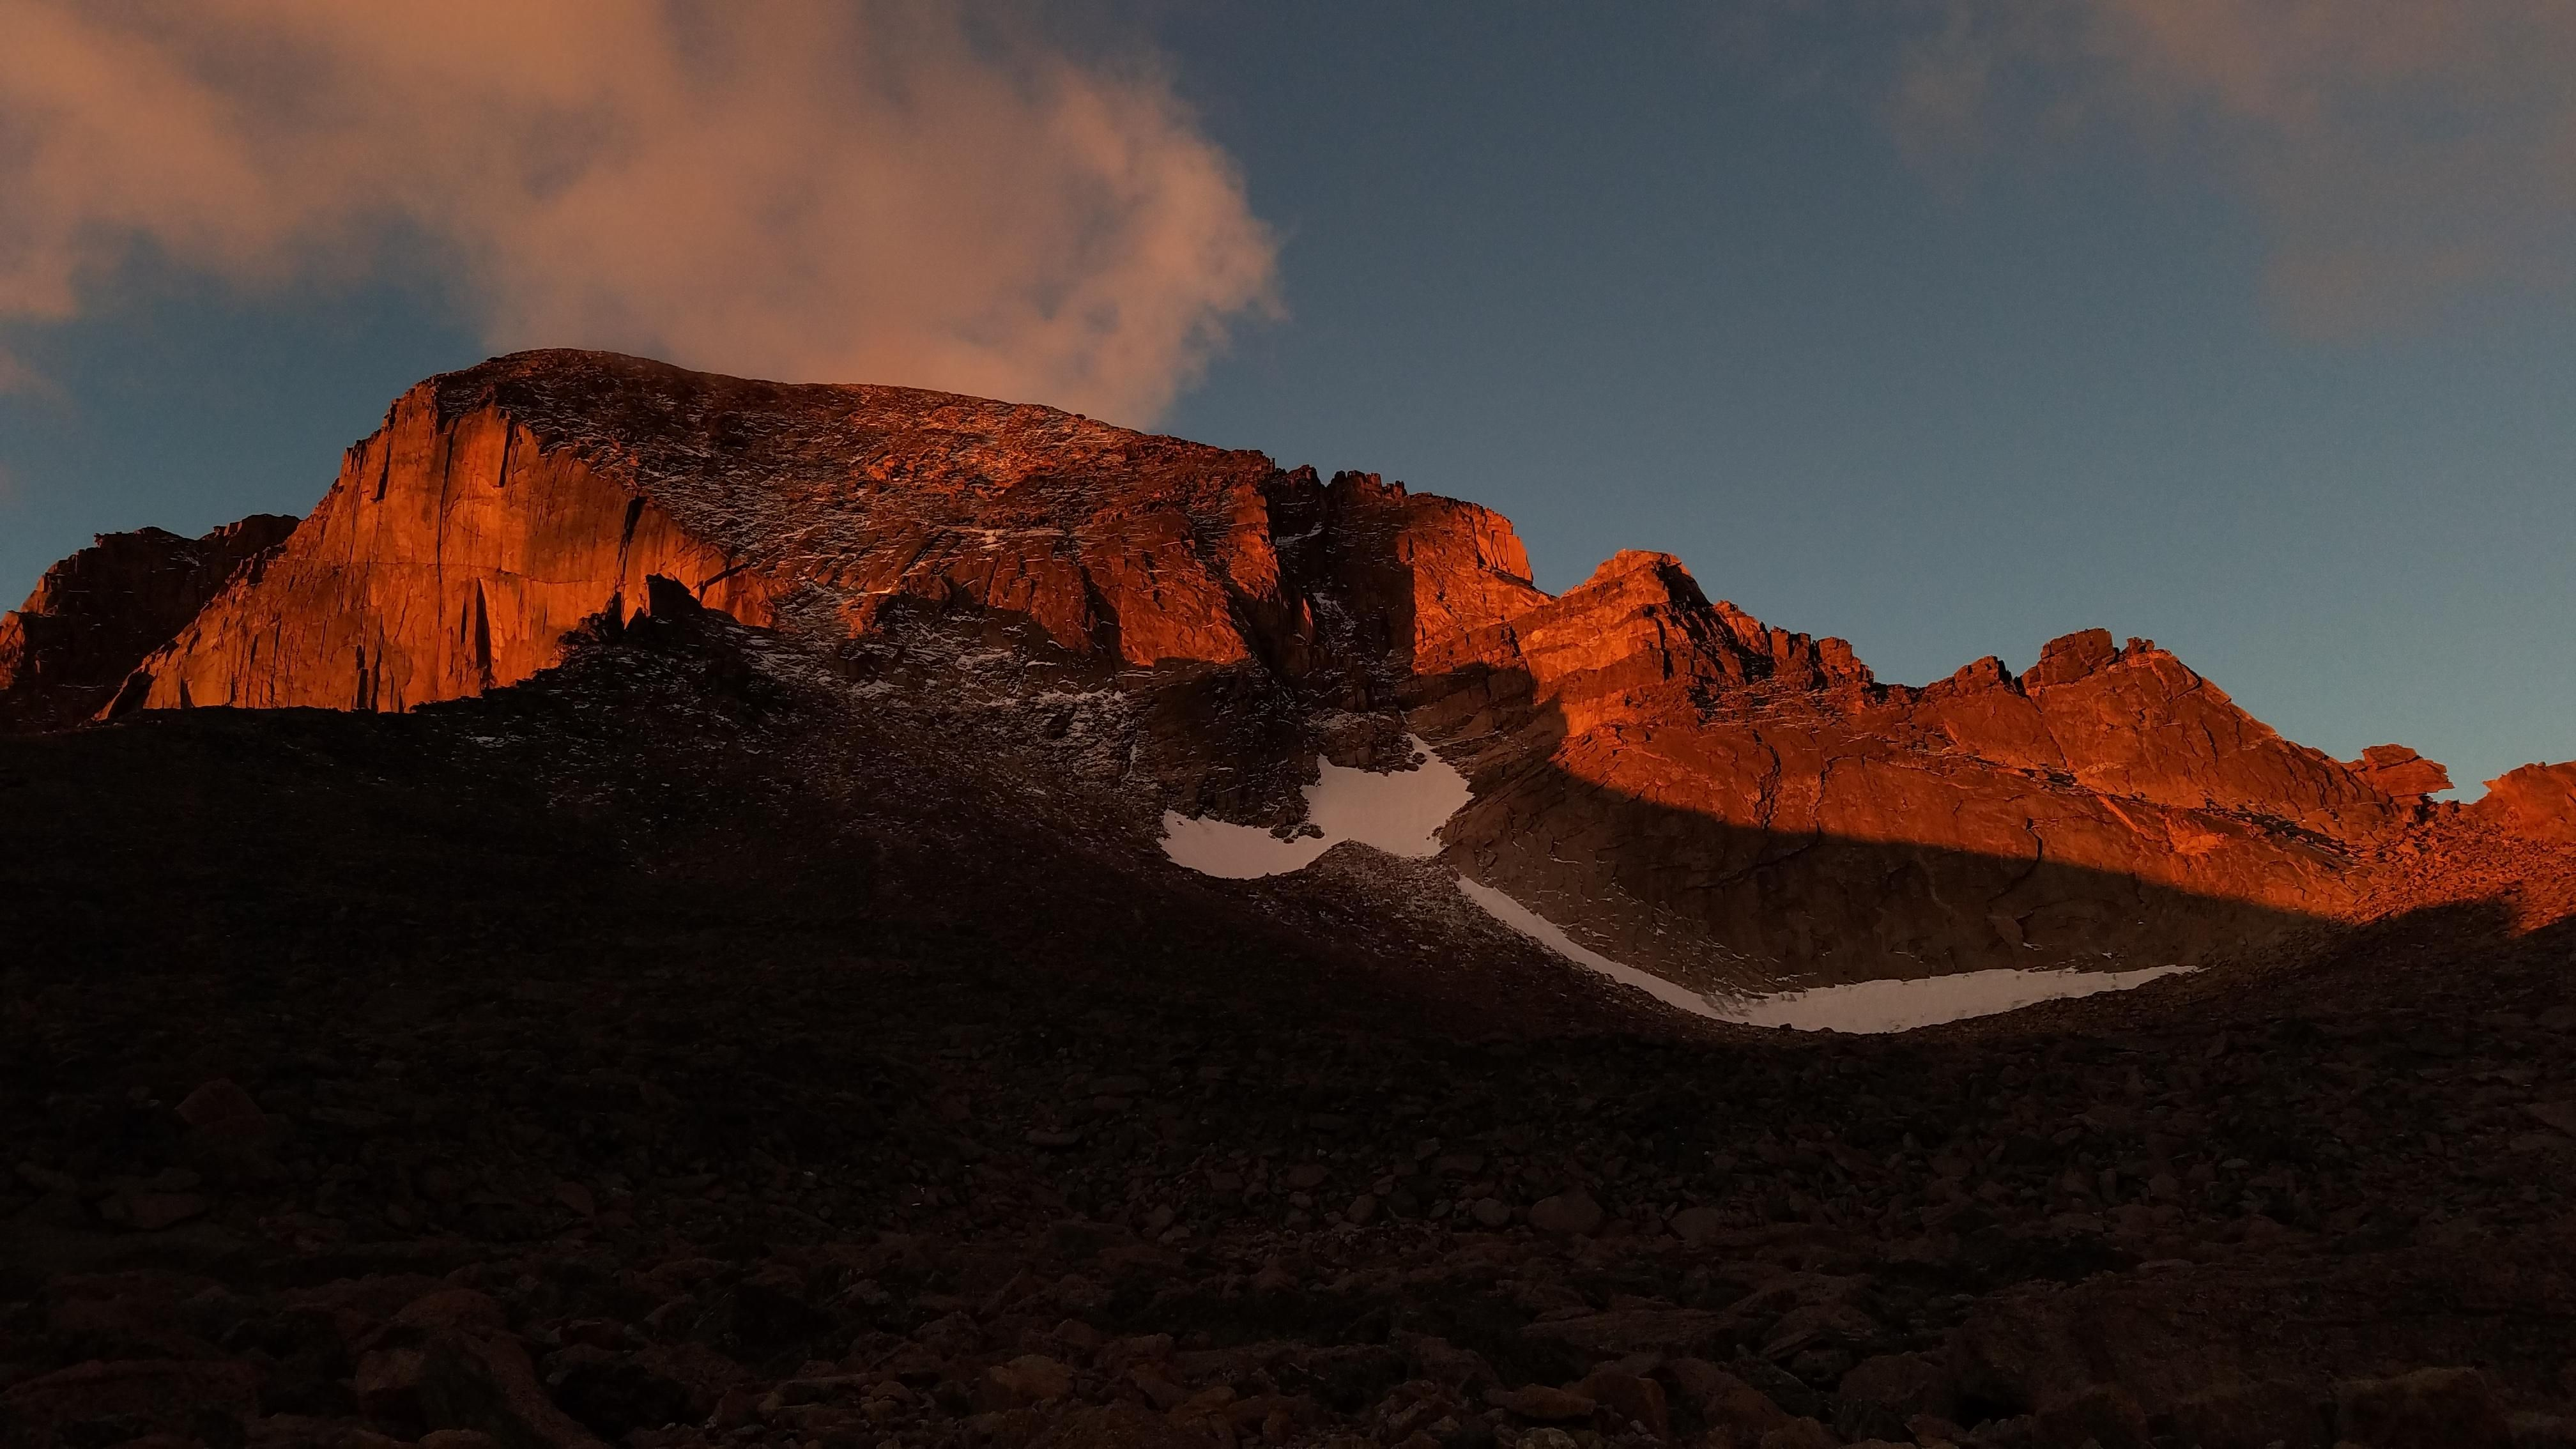 Unedited Photo Of Longs Peak In Rocky Mountain National Park After The Sunrise Struck The East Face Rocky Mountain National Park Rocky Mountains National Parks